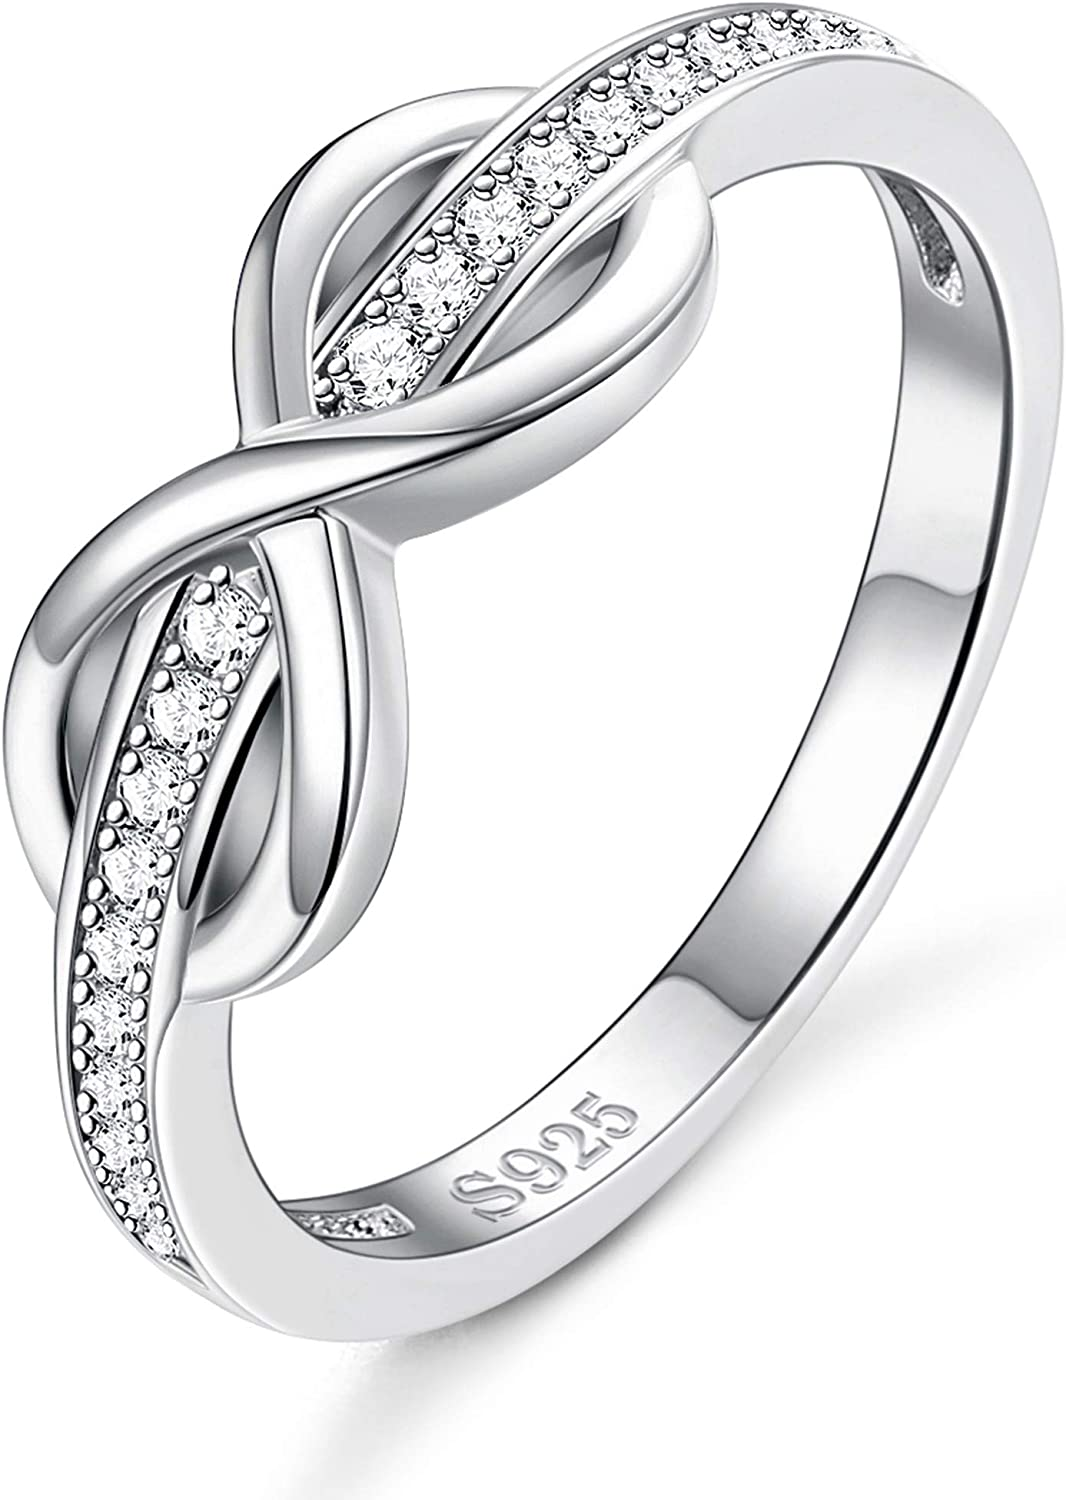 SEMAID Women 925 Sterling Silver Ring Eternity Infinity Symbol Size 6 7 8 9 10